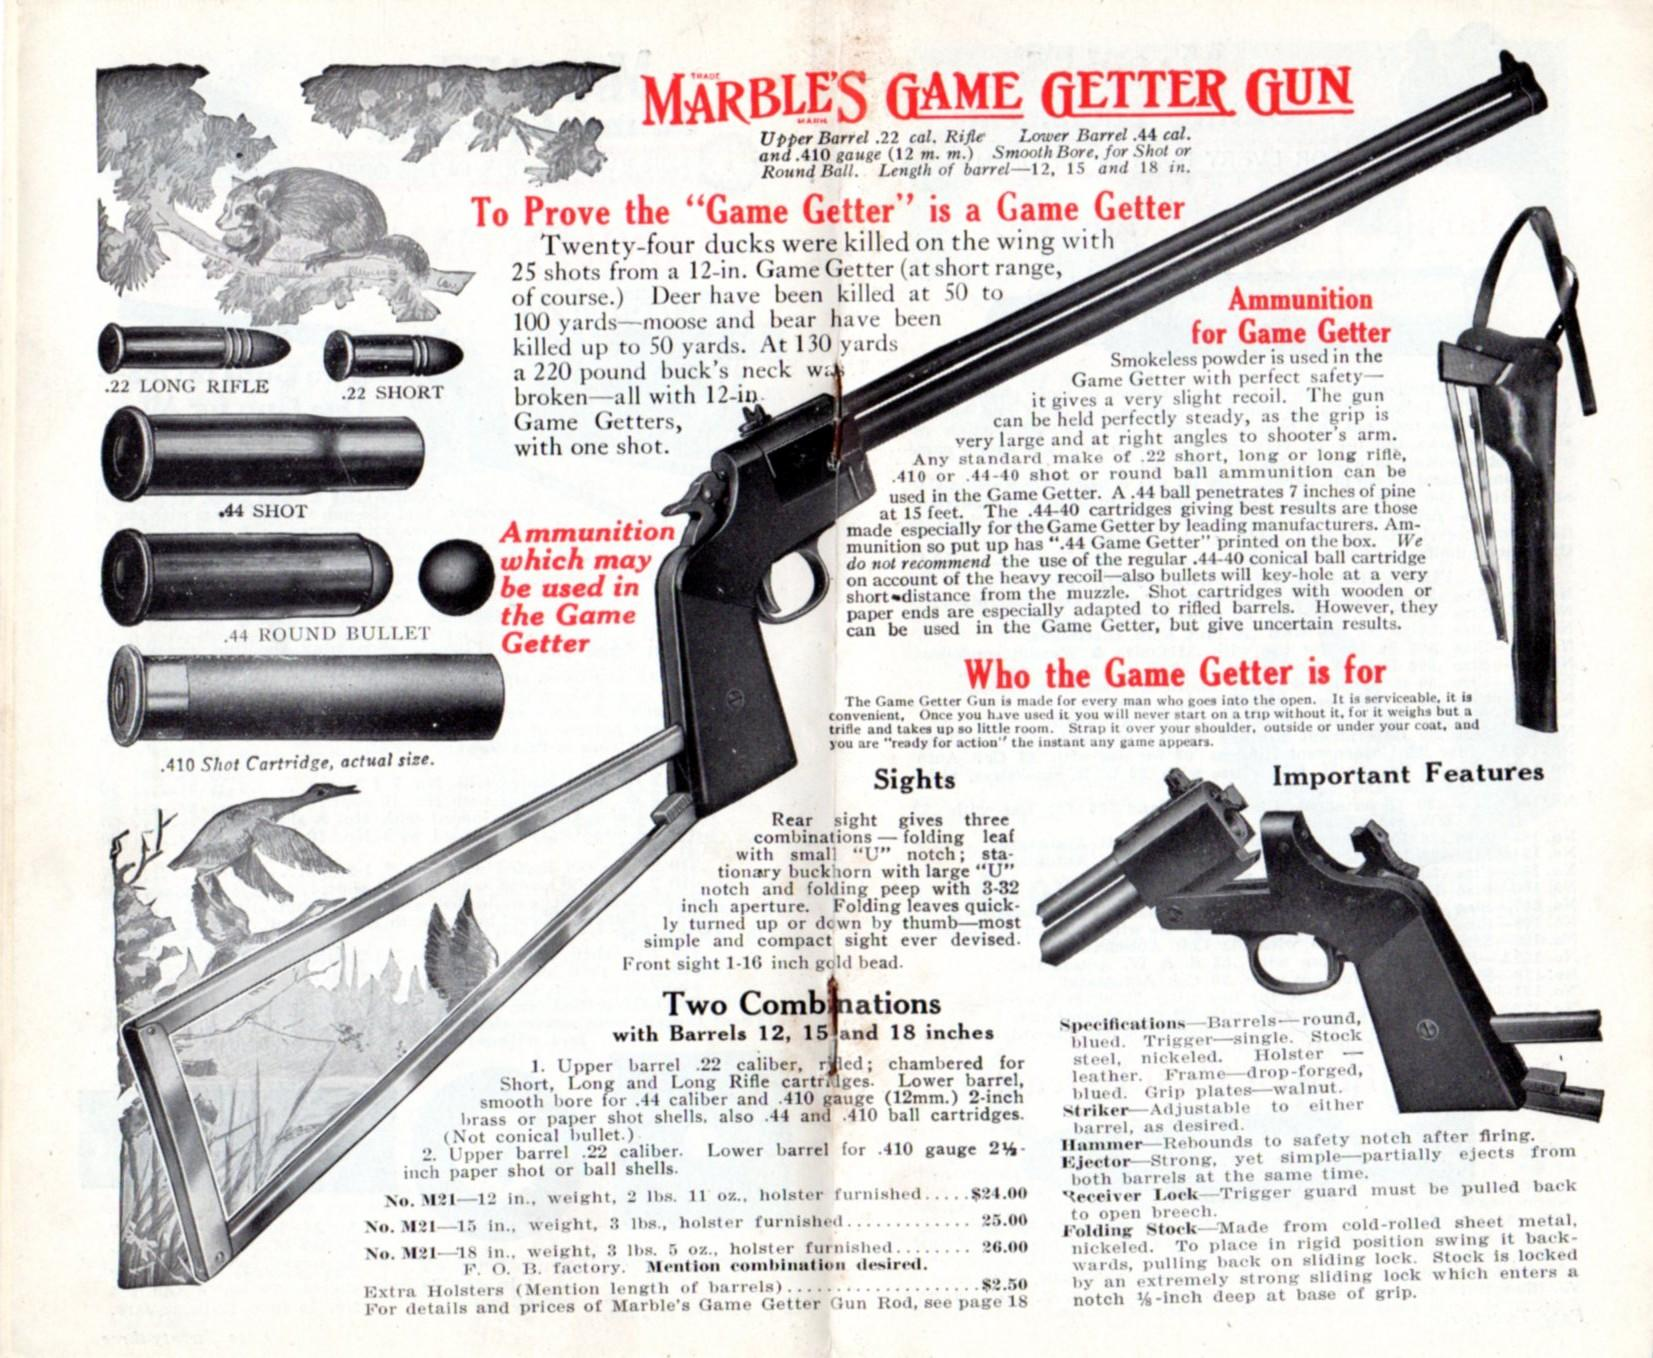 Marble's Outing Equipment (CATALOG)